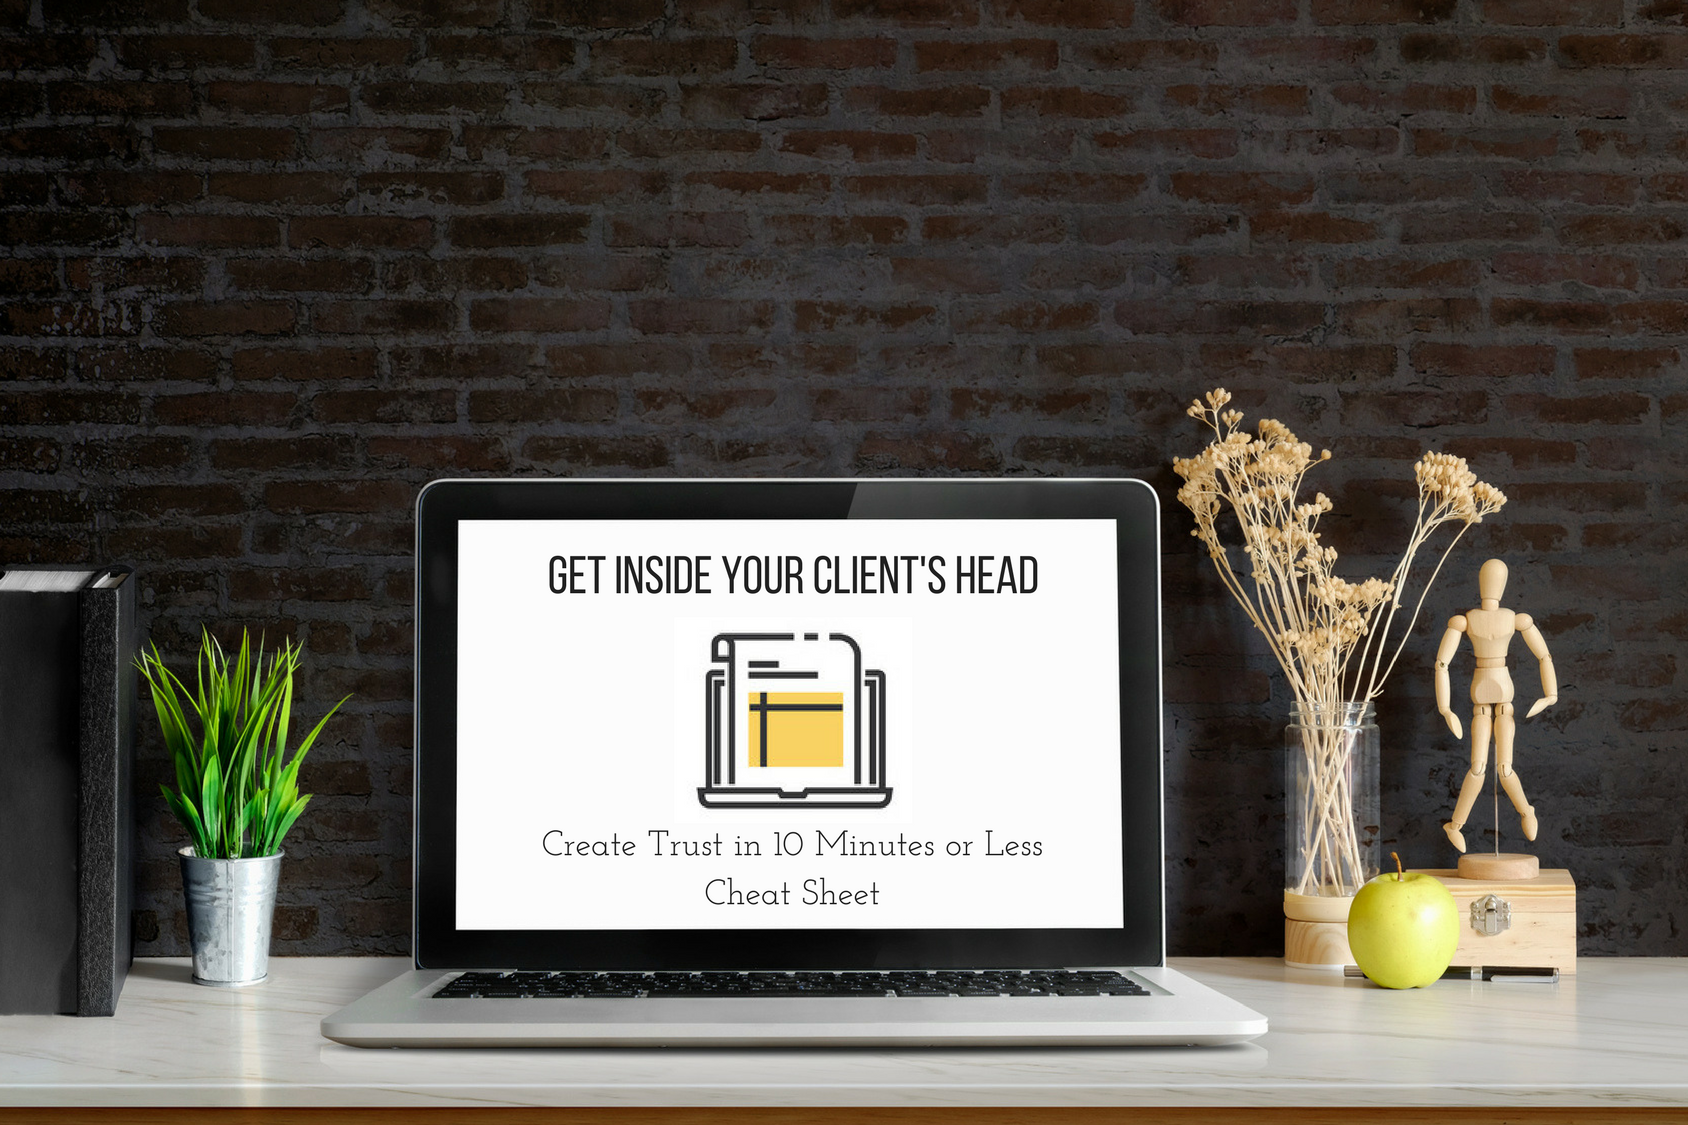 - click here to build trust with your client in 10 minutes or less